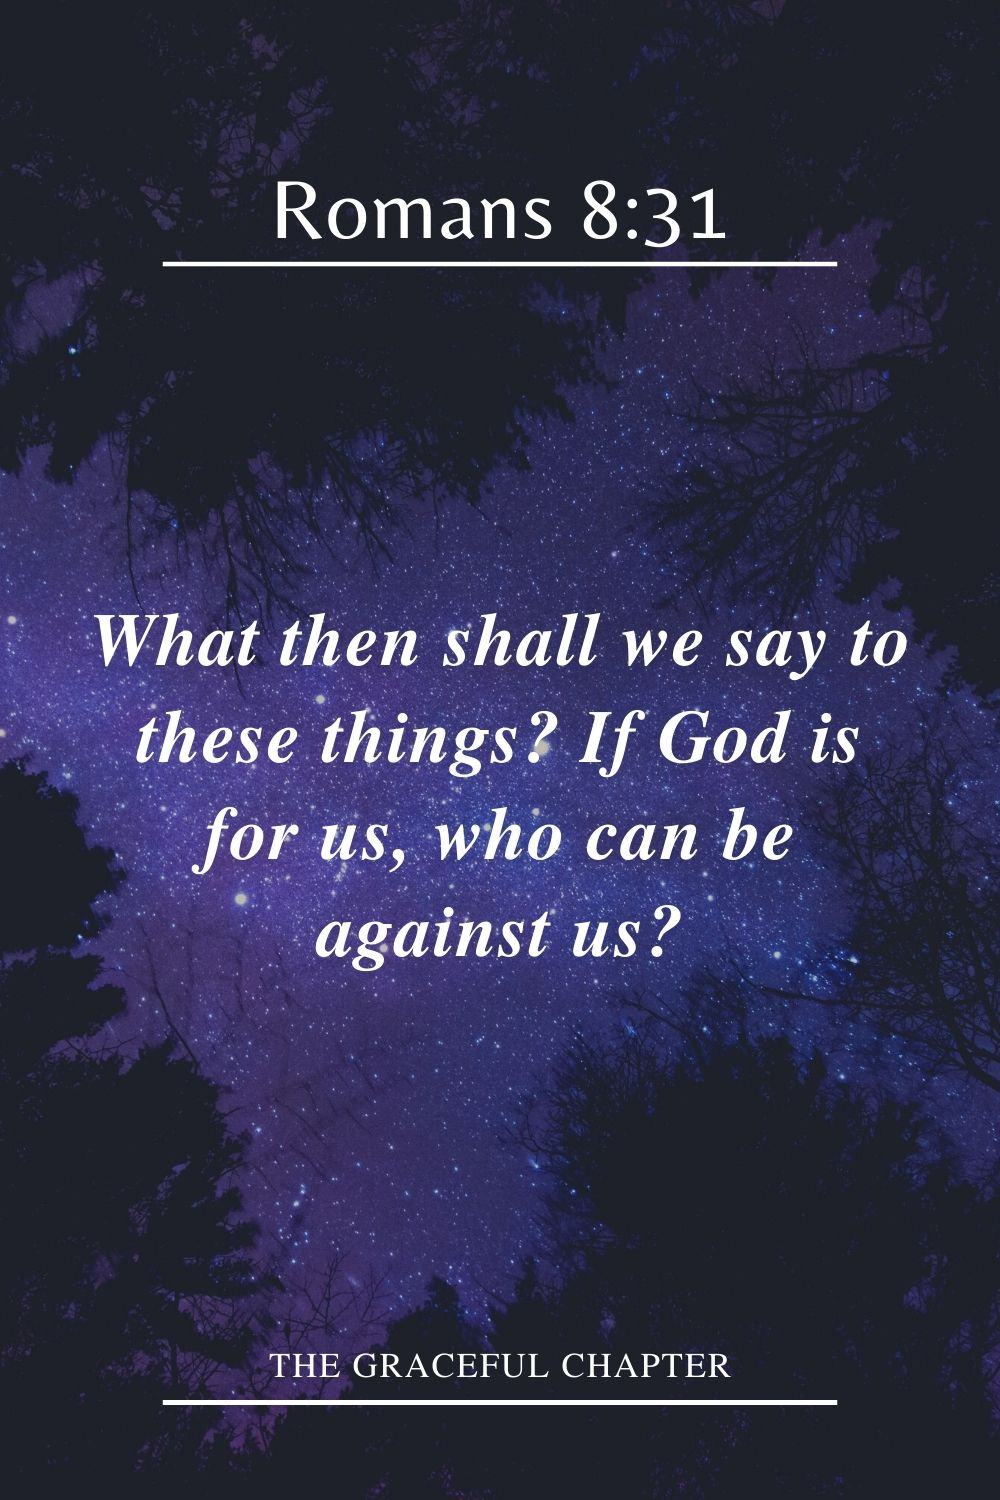 What then shall we say to these things? If God is for us, who can be against us? Romans 8:31